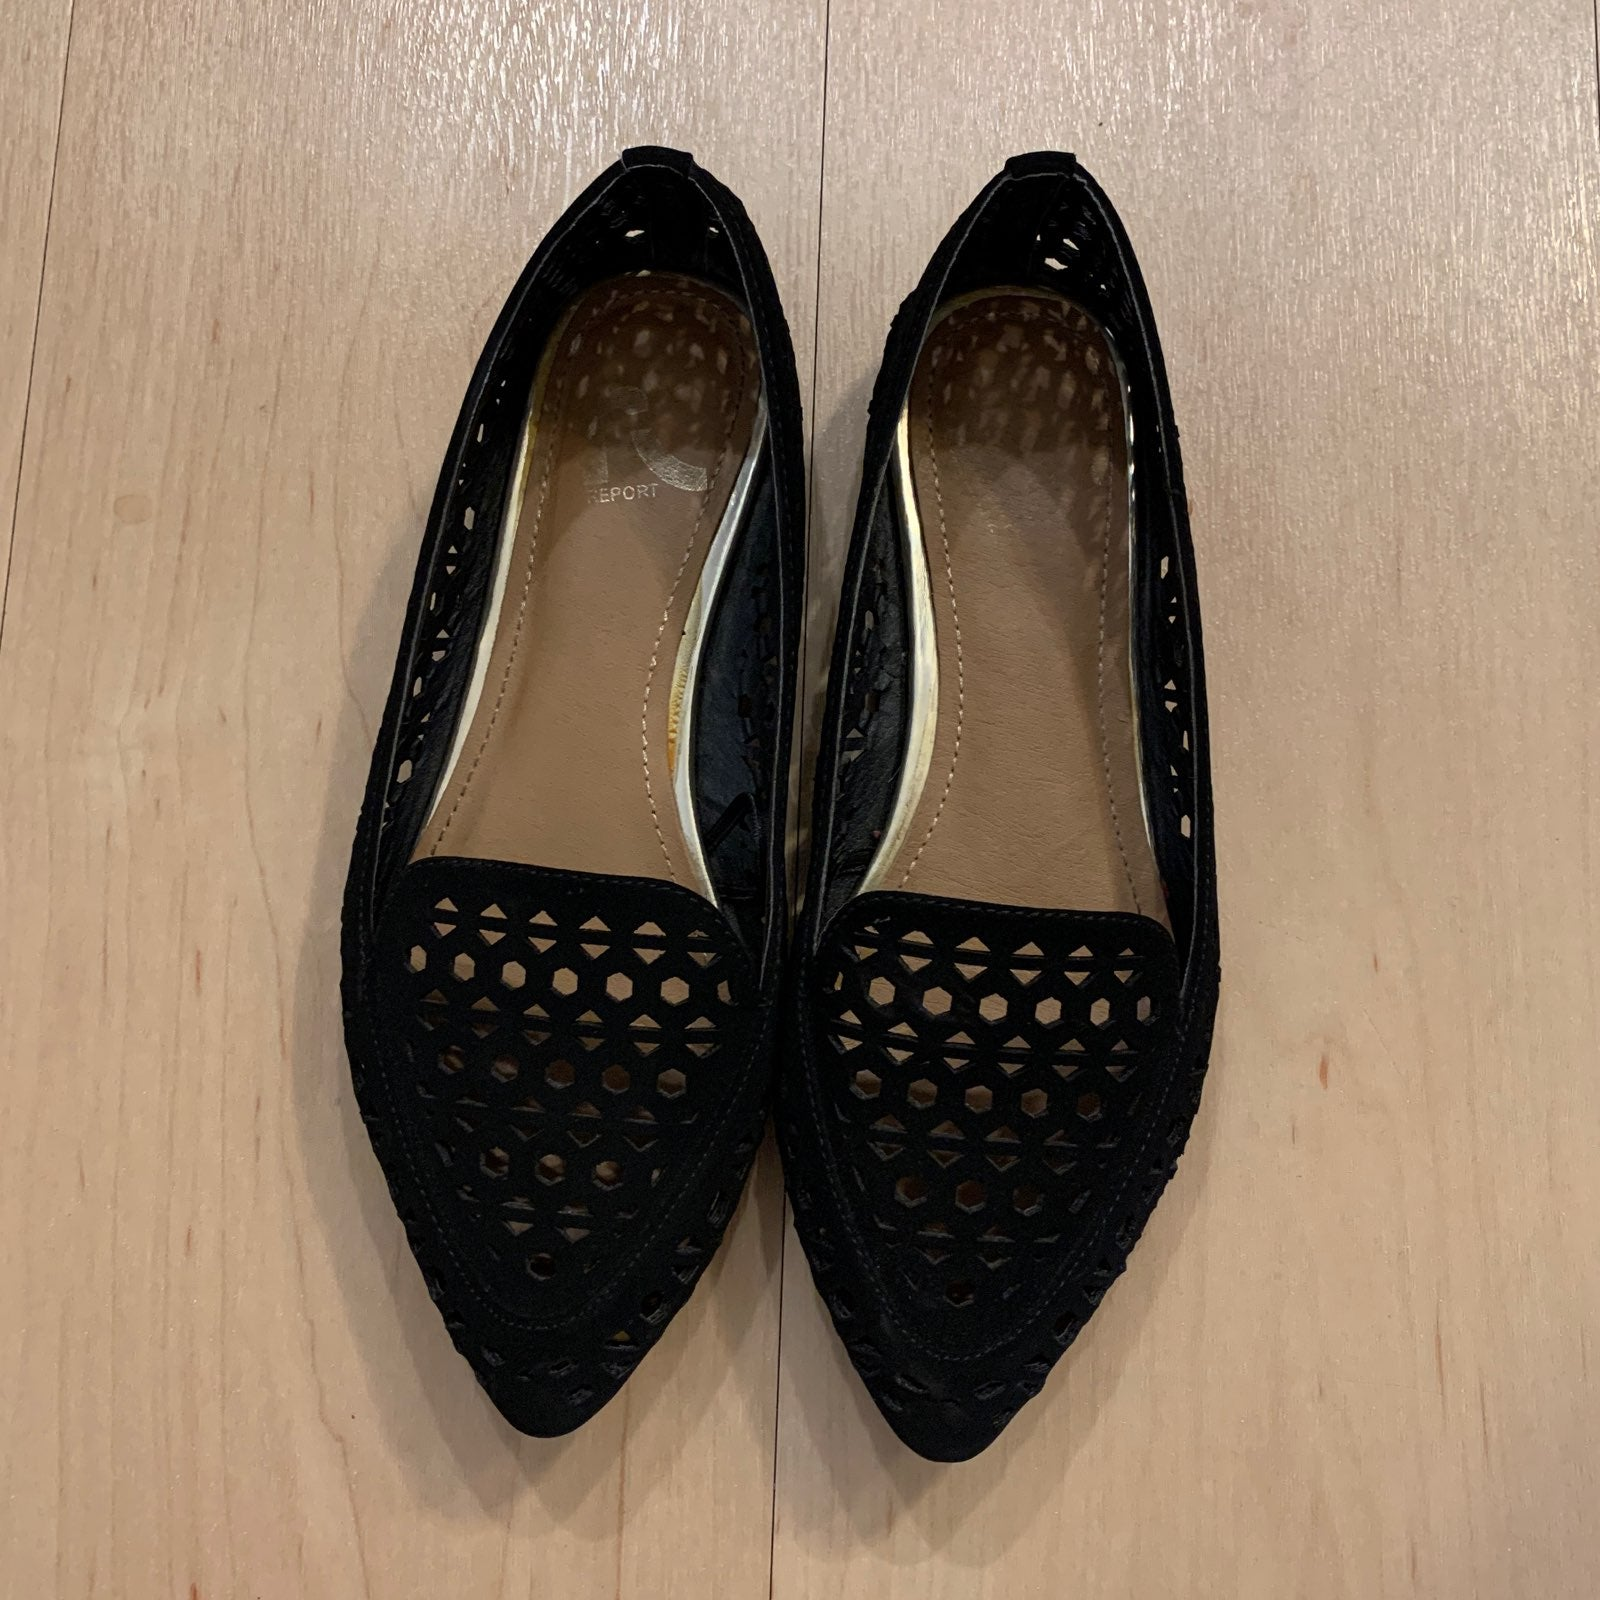 R Report pointed toe black flats